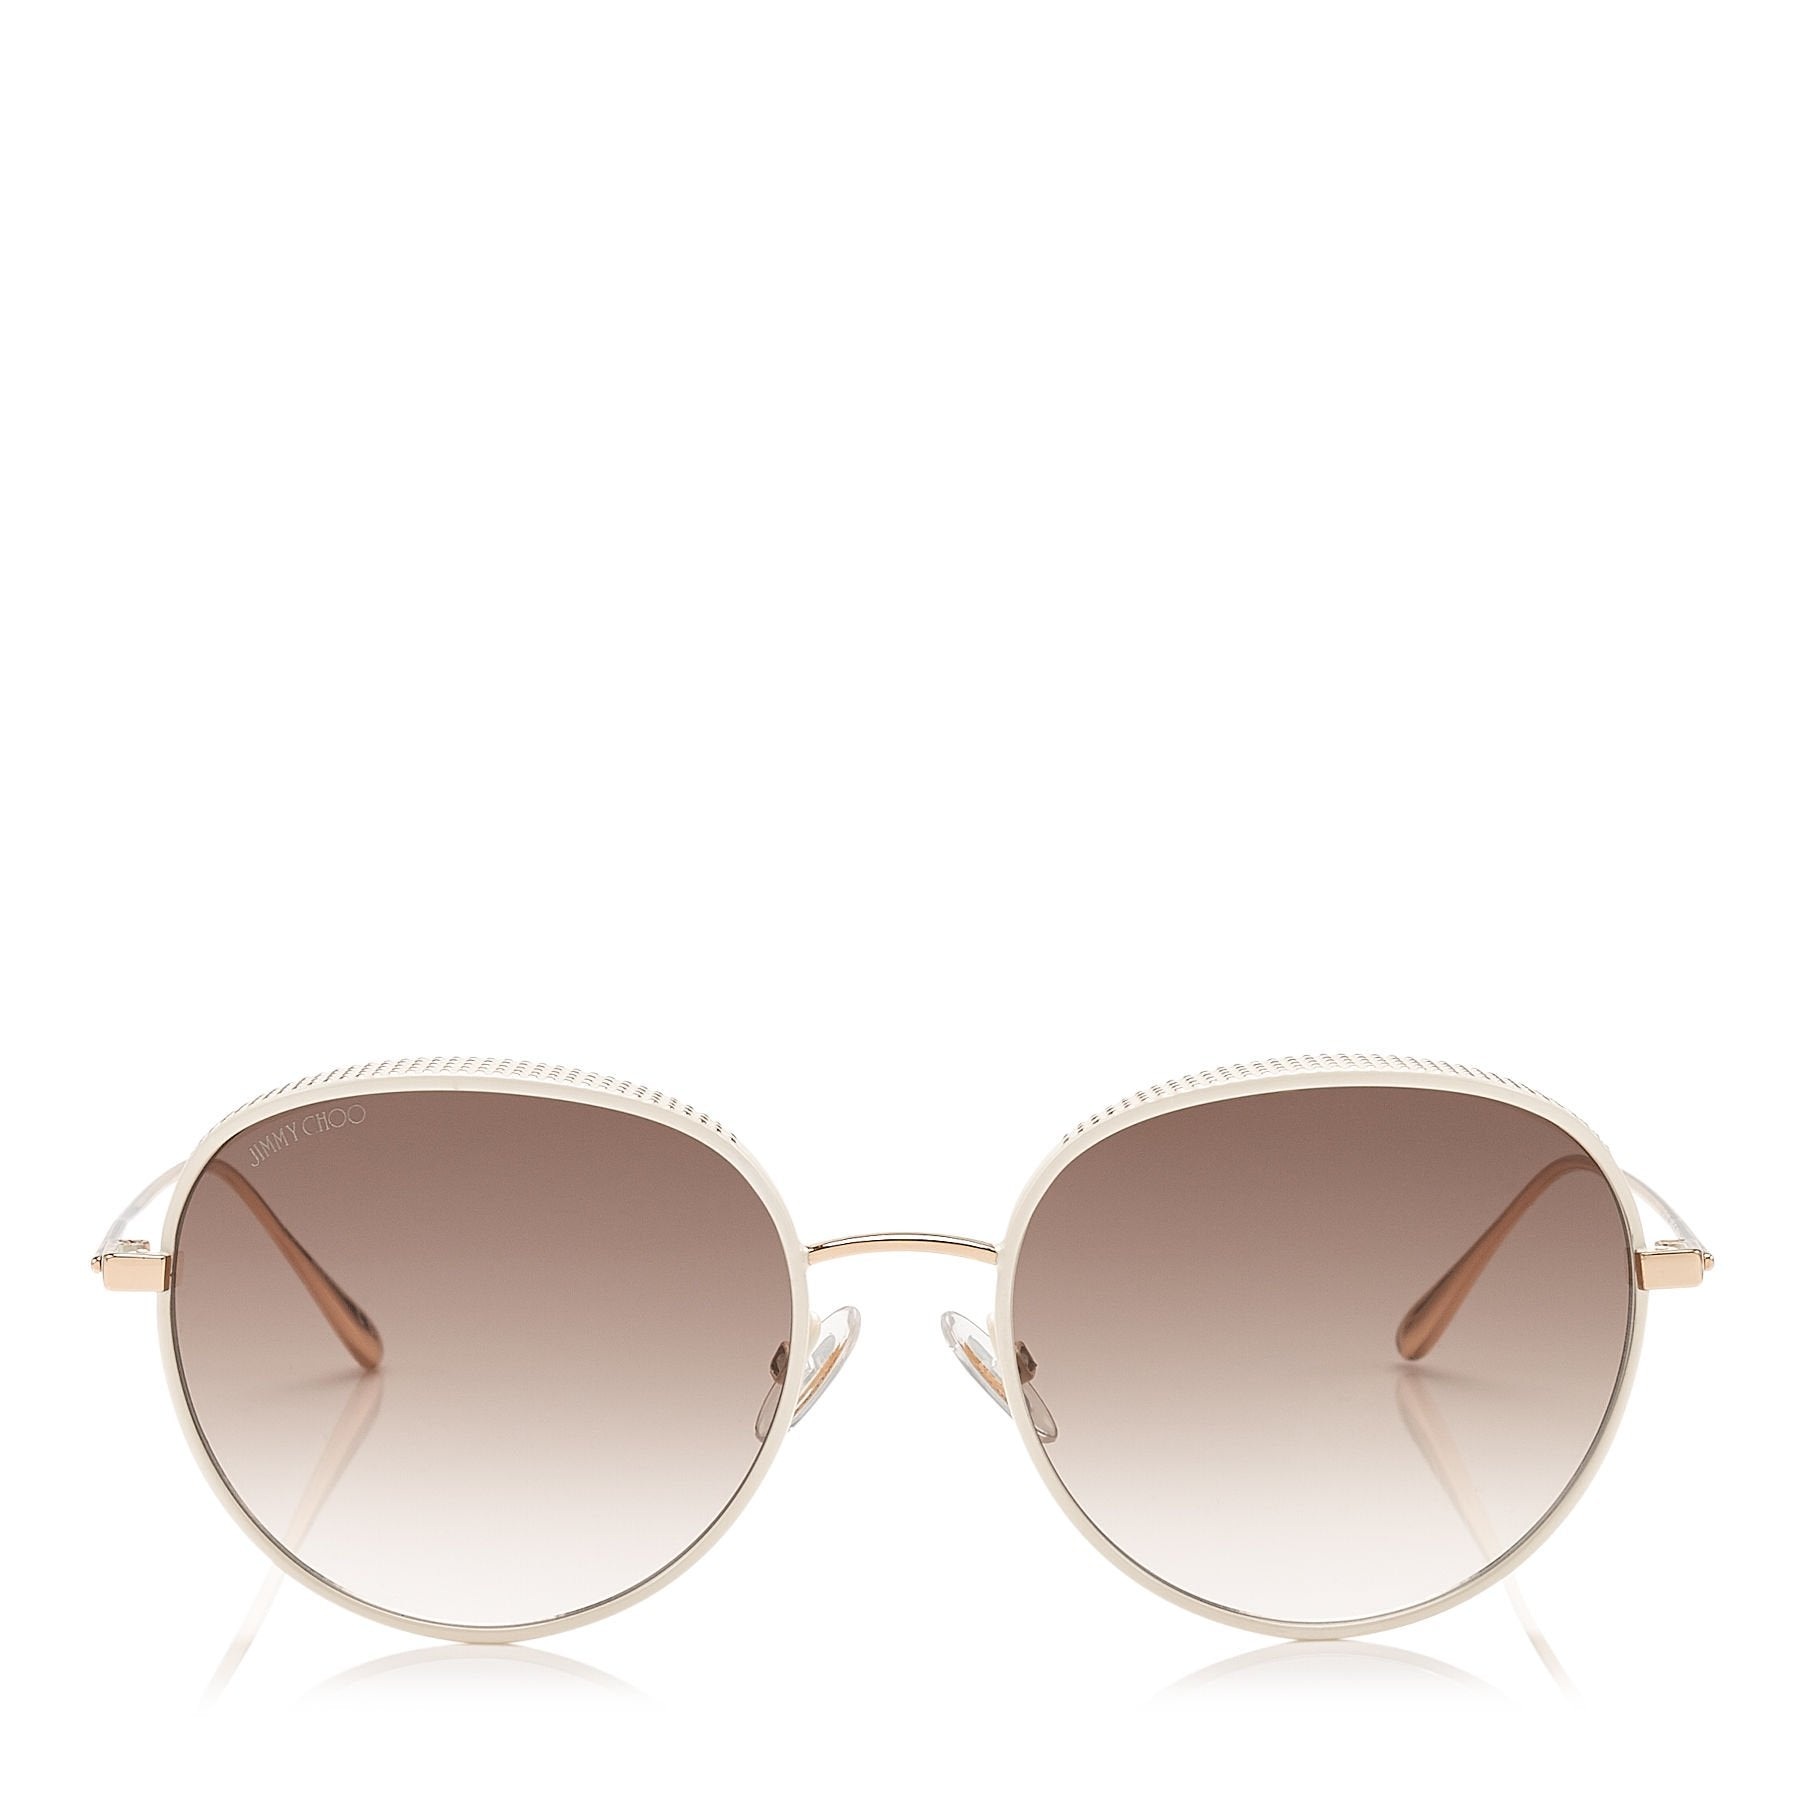 JIMMY CHOO Ello White and Gold Metal Framed Sunglasses with Micro ...